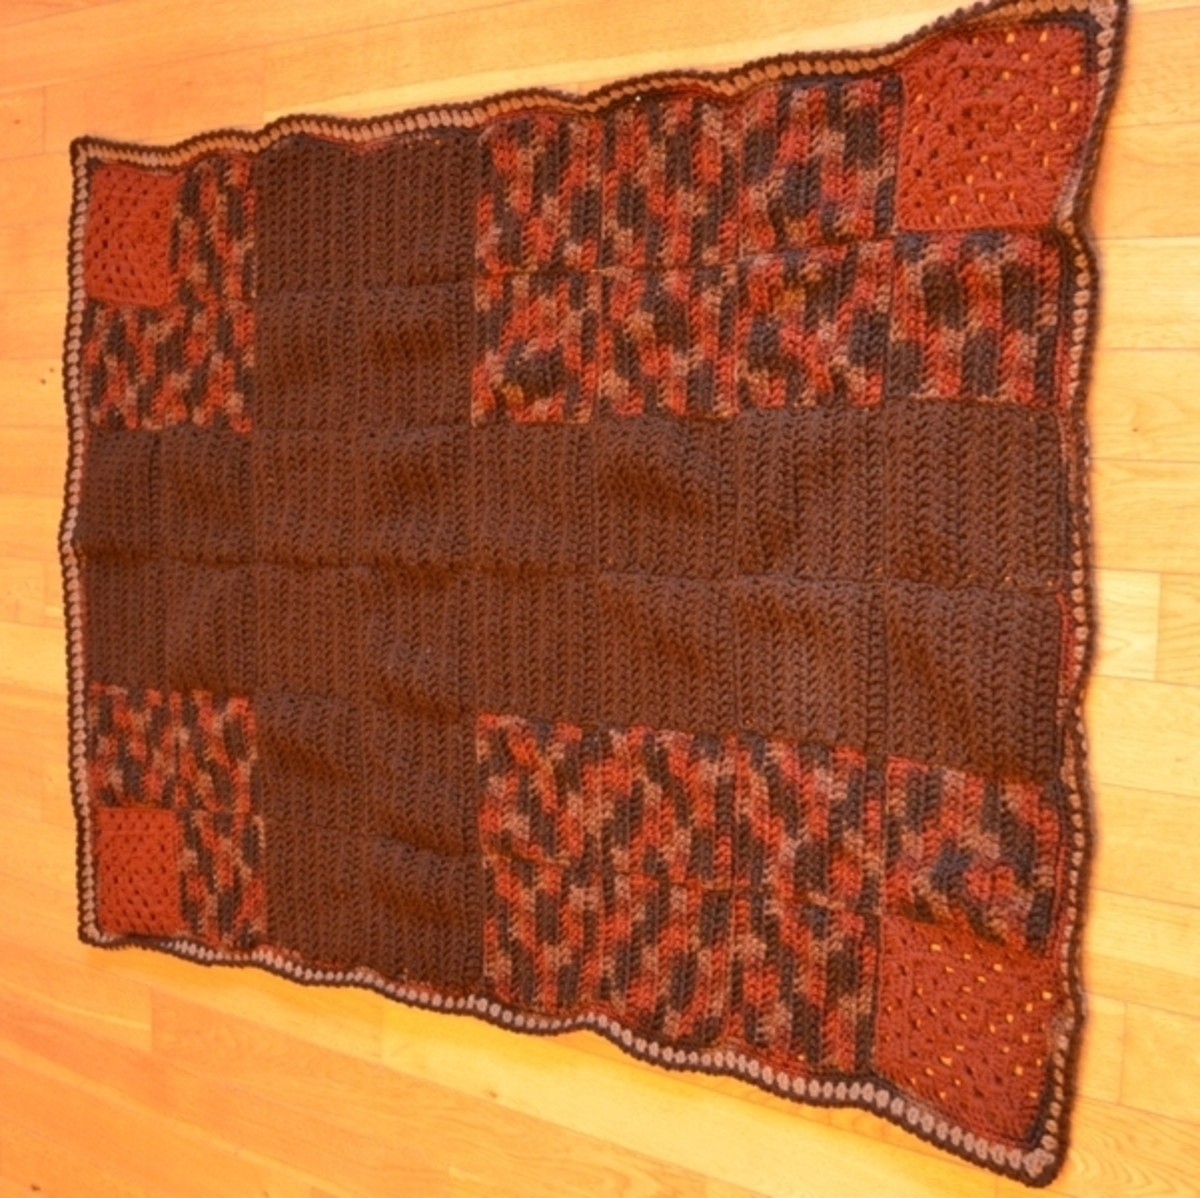 Finished autumn-colored afghan with cross pattern.